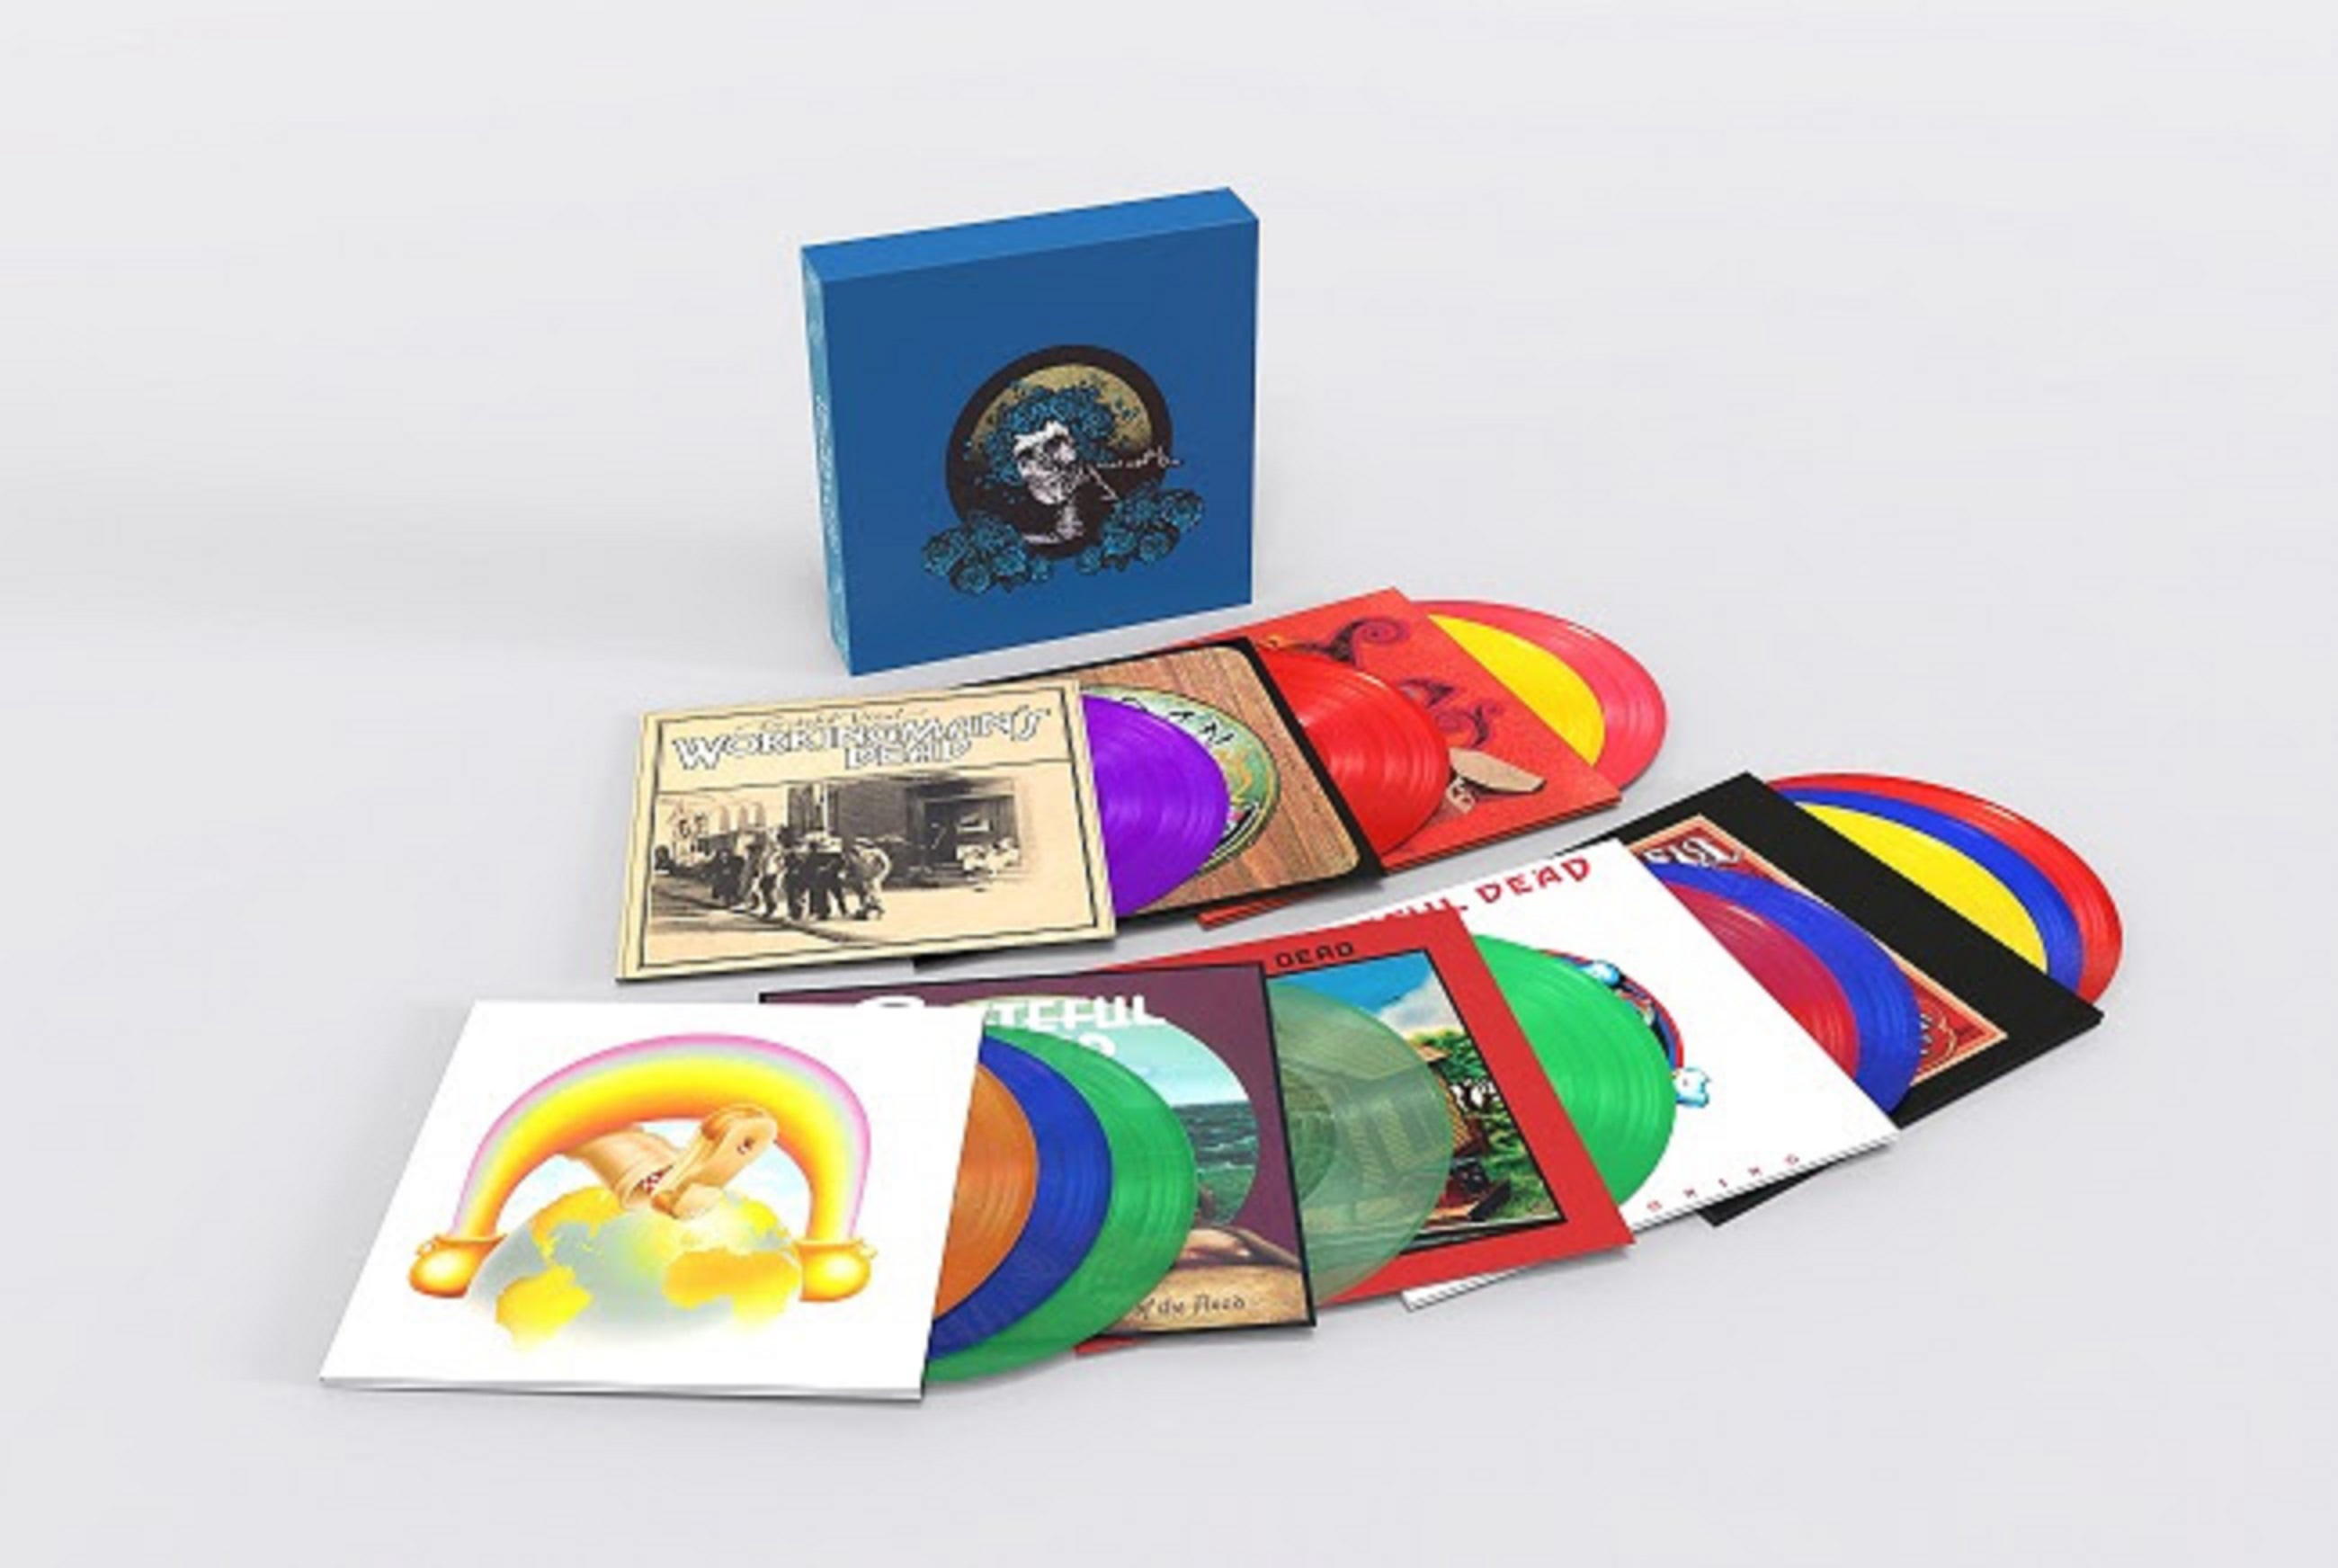 Grateful Dead Announce 14-LP AUDIOPHILE VINYL BOXED SET